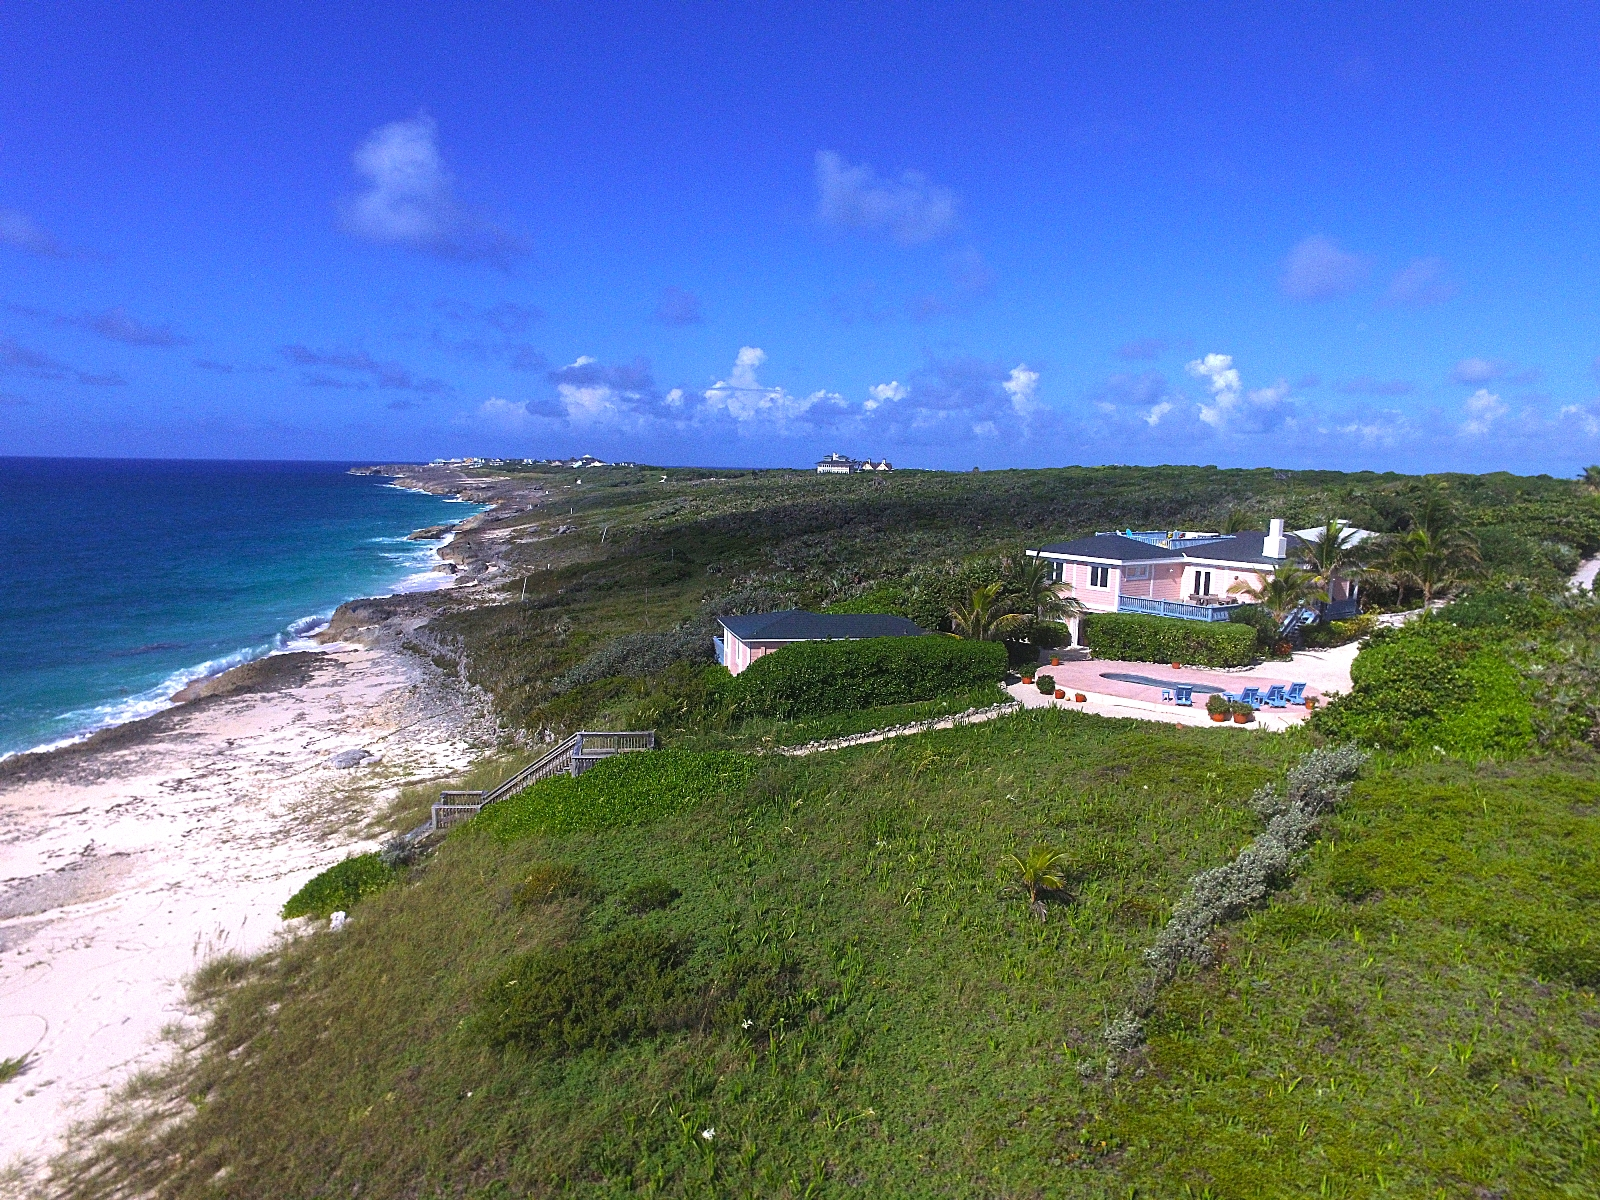 Maison unifamiliale pour l Vente à Walking Stick, a 2.2.Acre Atlantic Estate at The Abaco Club on Winding Bay MLS-27717 Abaco, Bahamas